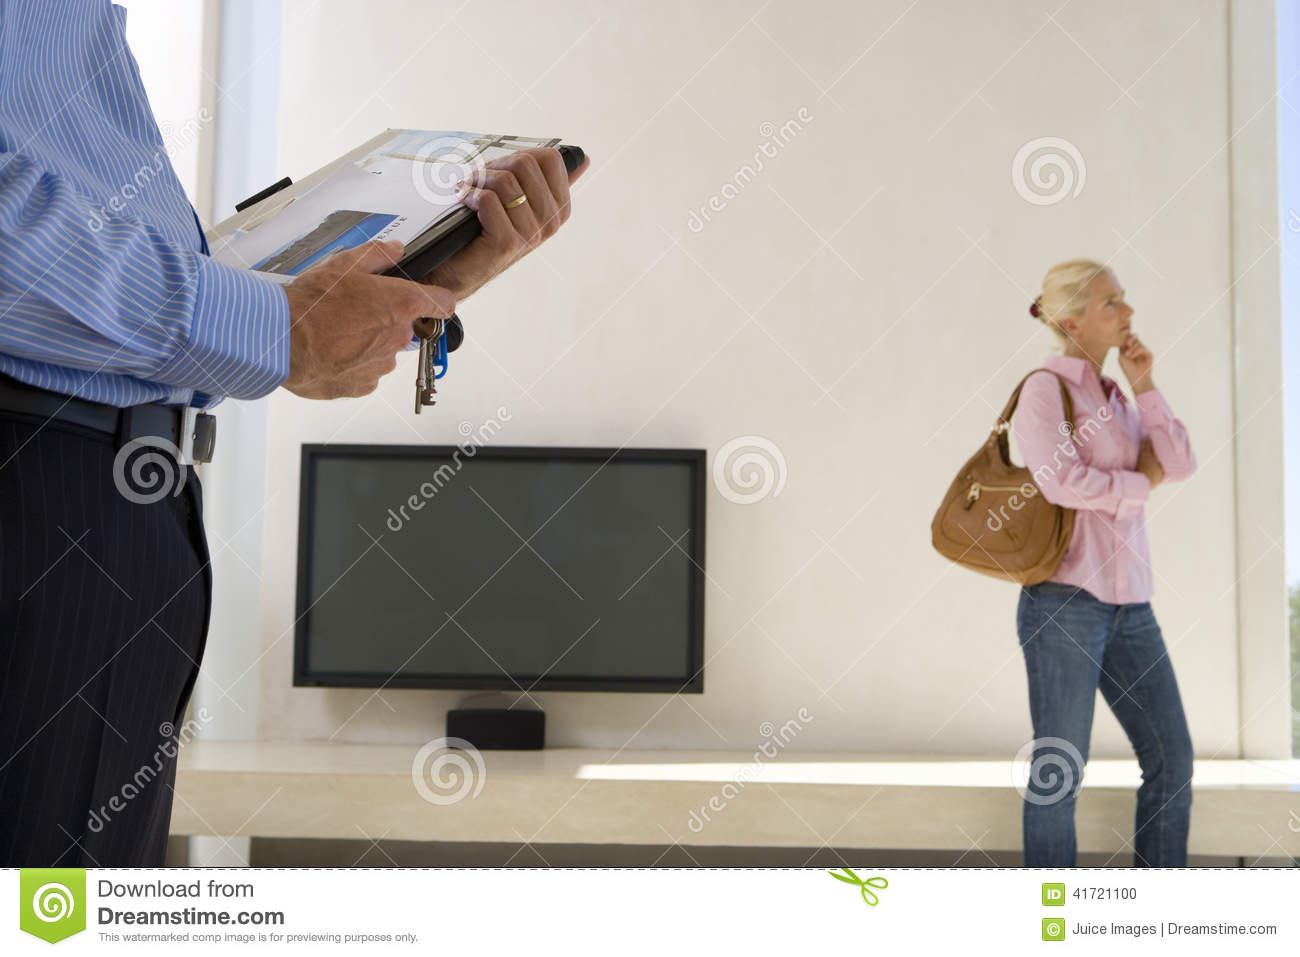 Male real estate agent and mature woman standing in living room, television in background